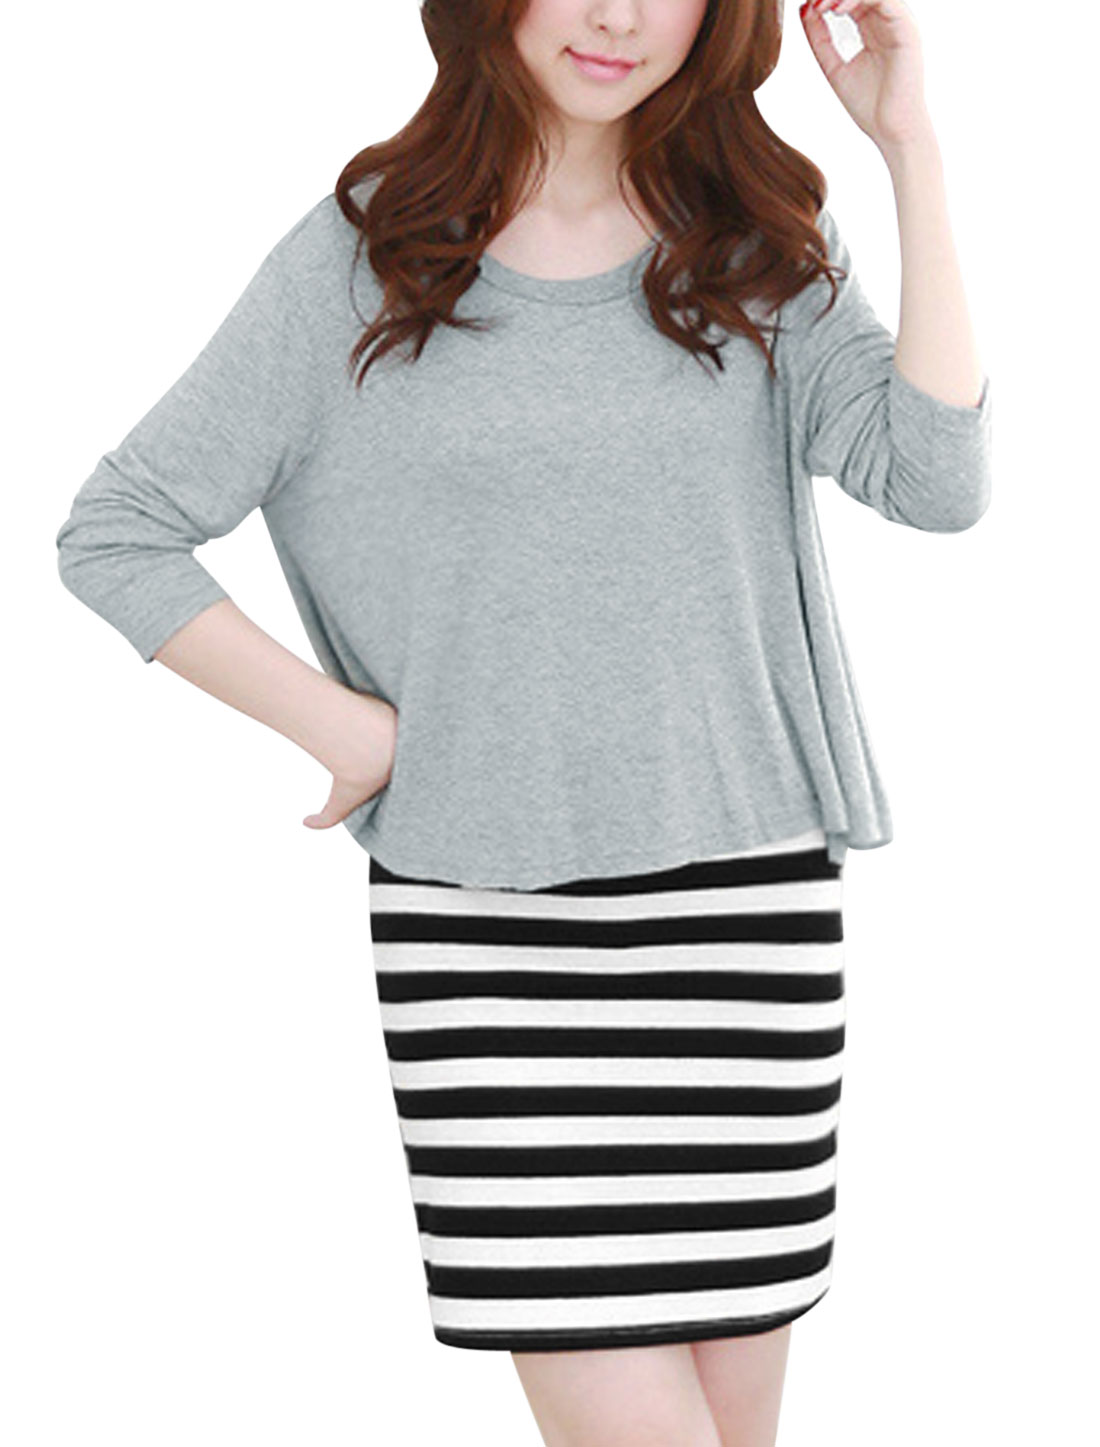 Ladies Light Gray Round Neck Long Sleeves Top w Stripes Dress S